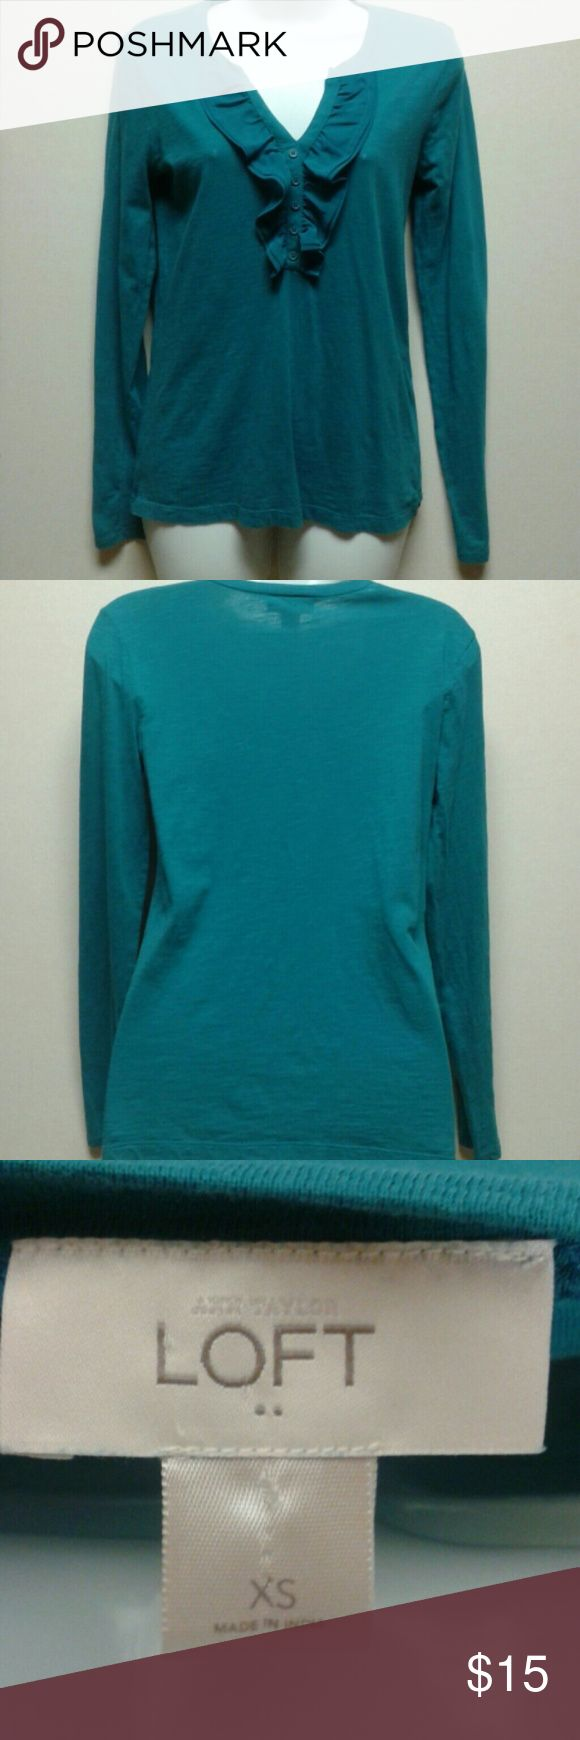 Ann Taylor Loft Green Long sleeve Top XS Ann Taylor Loft Green Long sleeve Top Ruffled Front Size XS  100% Cotton  Contact us for measurements if needed. Ann Taylor Loft Tops Blouses